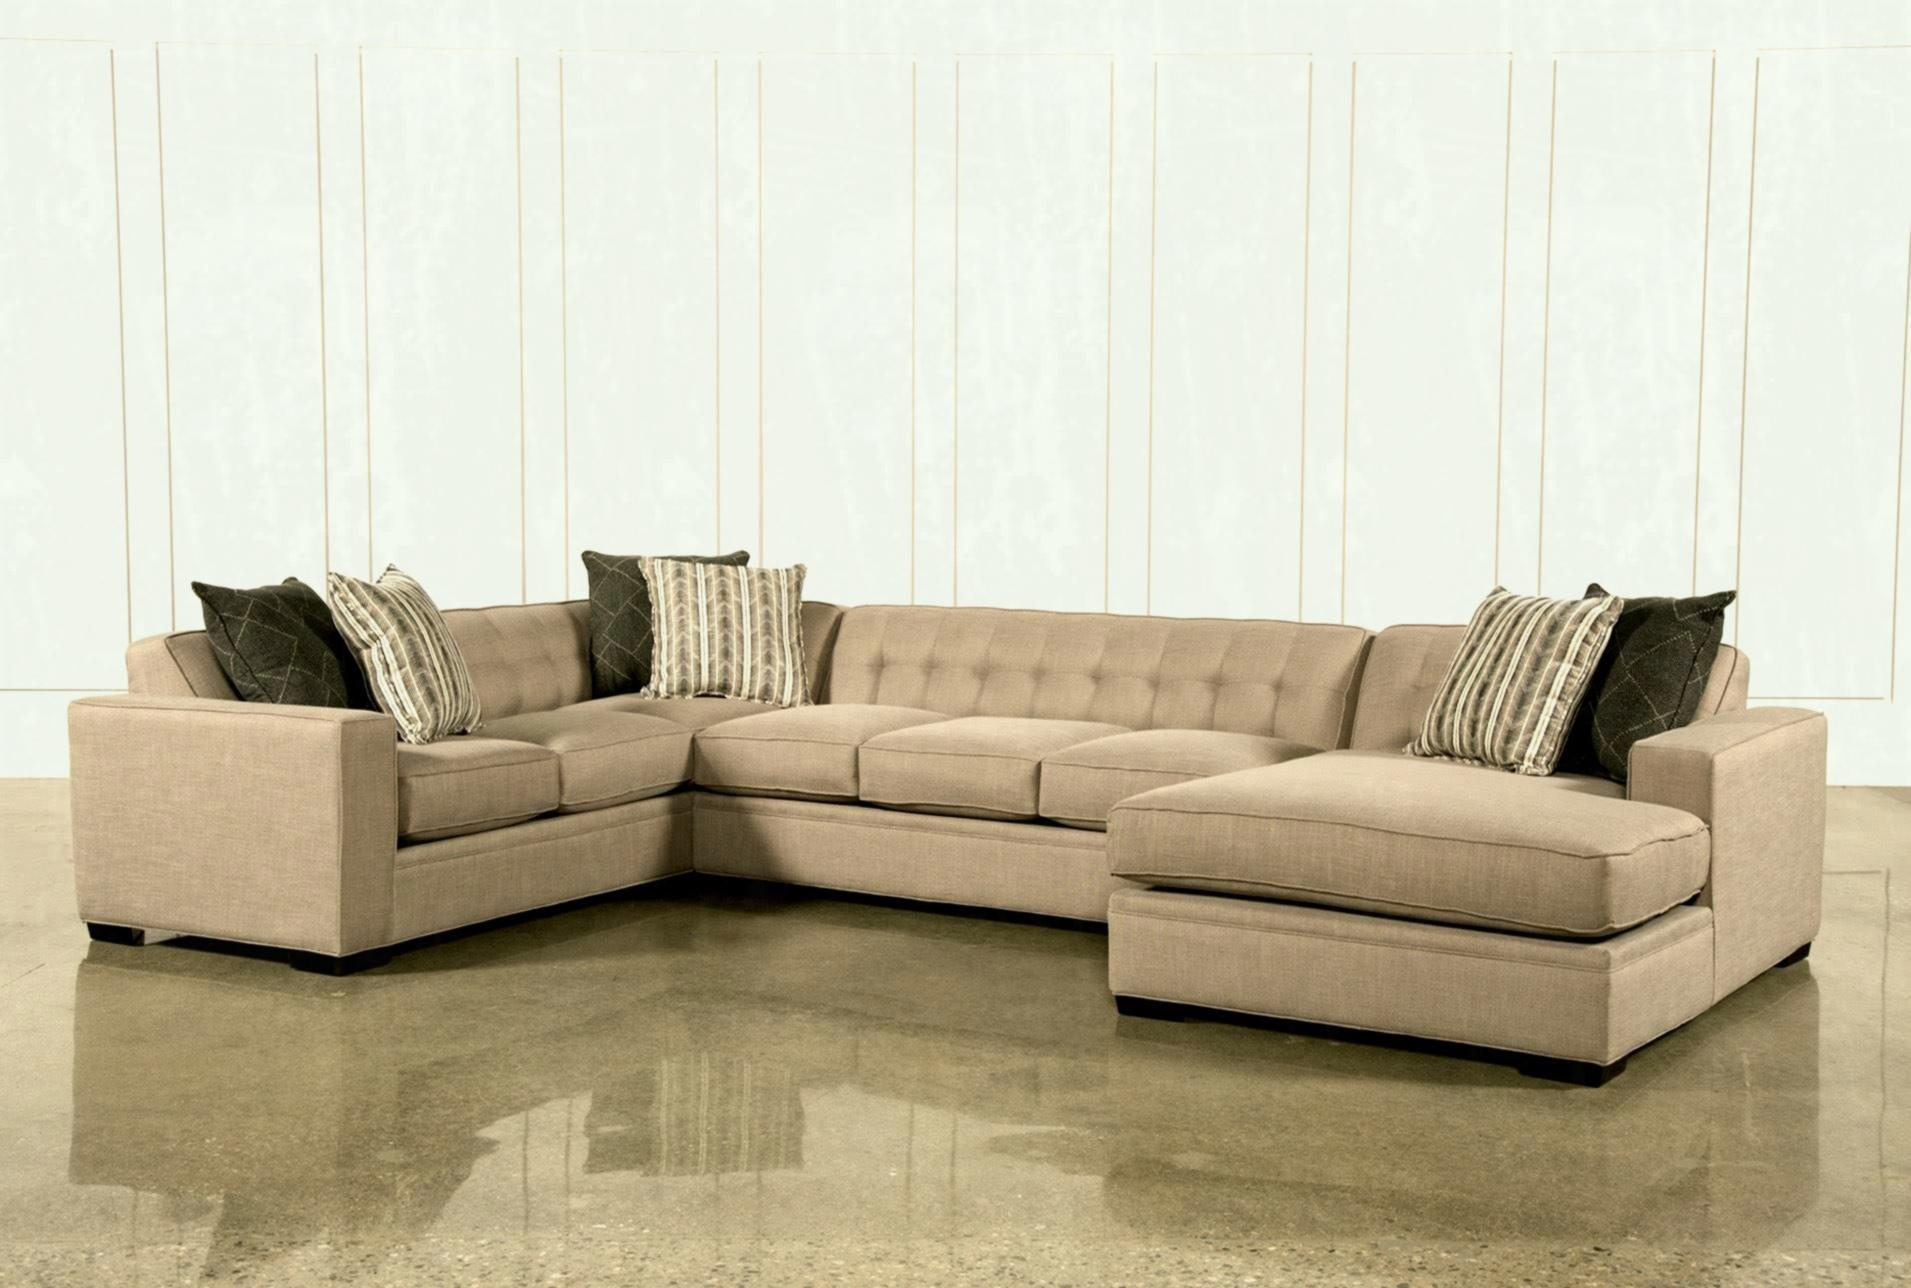 Living Spaces Sectional – Tidex In Meyer 3 Piece Sectionals With Laf Chaise (Image 12 of 25)